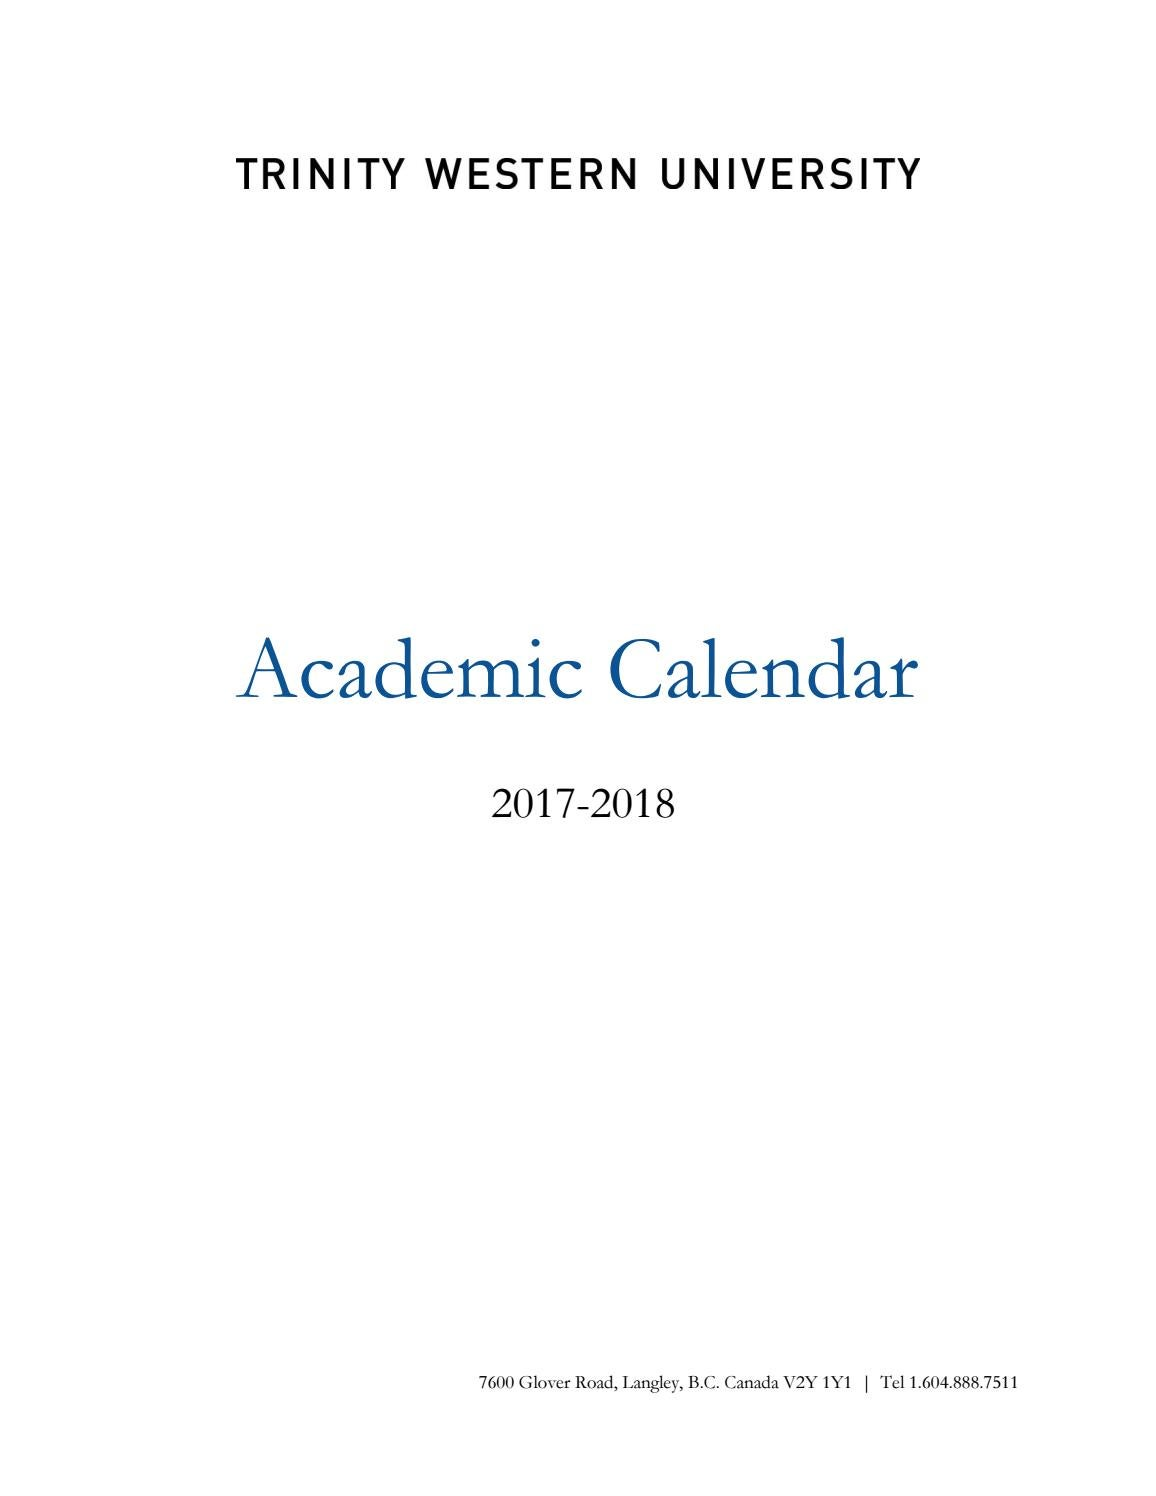 Instructive and methodological letters for the 2017-2018 academic year 52